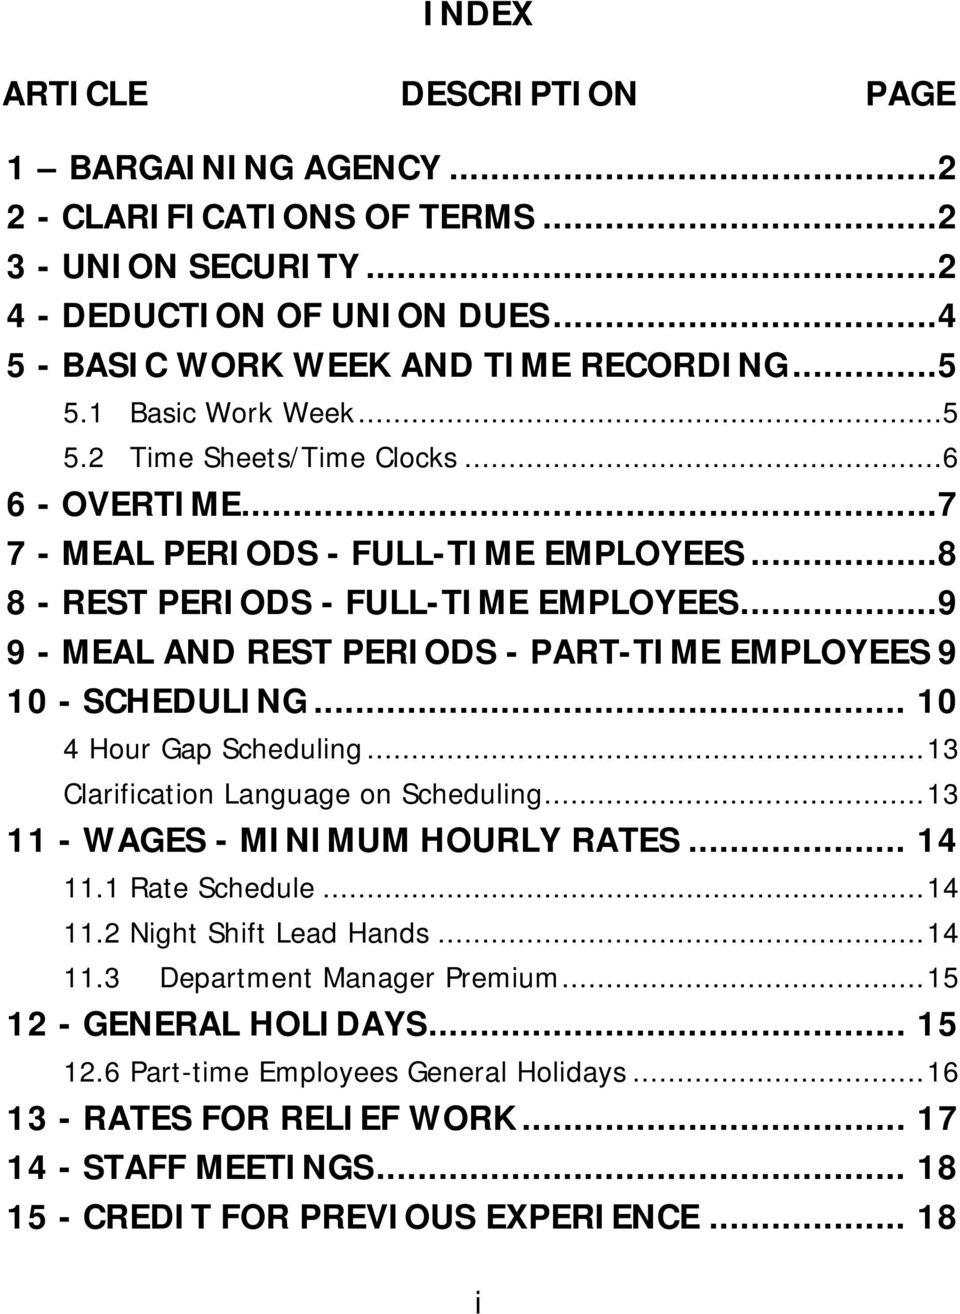 ..9 9 - MEAL AND REST PERIODS - PART-TIME EMPLOYEES 9 10 - SCHEDULING... 10 4 Hour Gap Scheduling... 13 Clarification Language on Scheduling... 13 11 - WAGES - MINIMUM HOURLY RATES... 14 11.